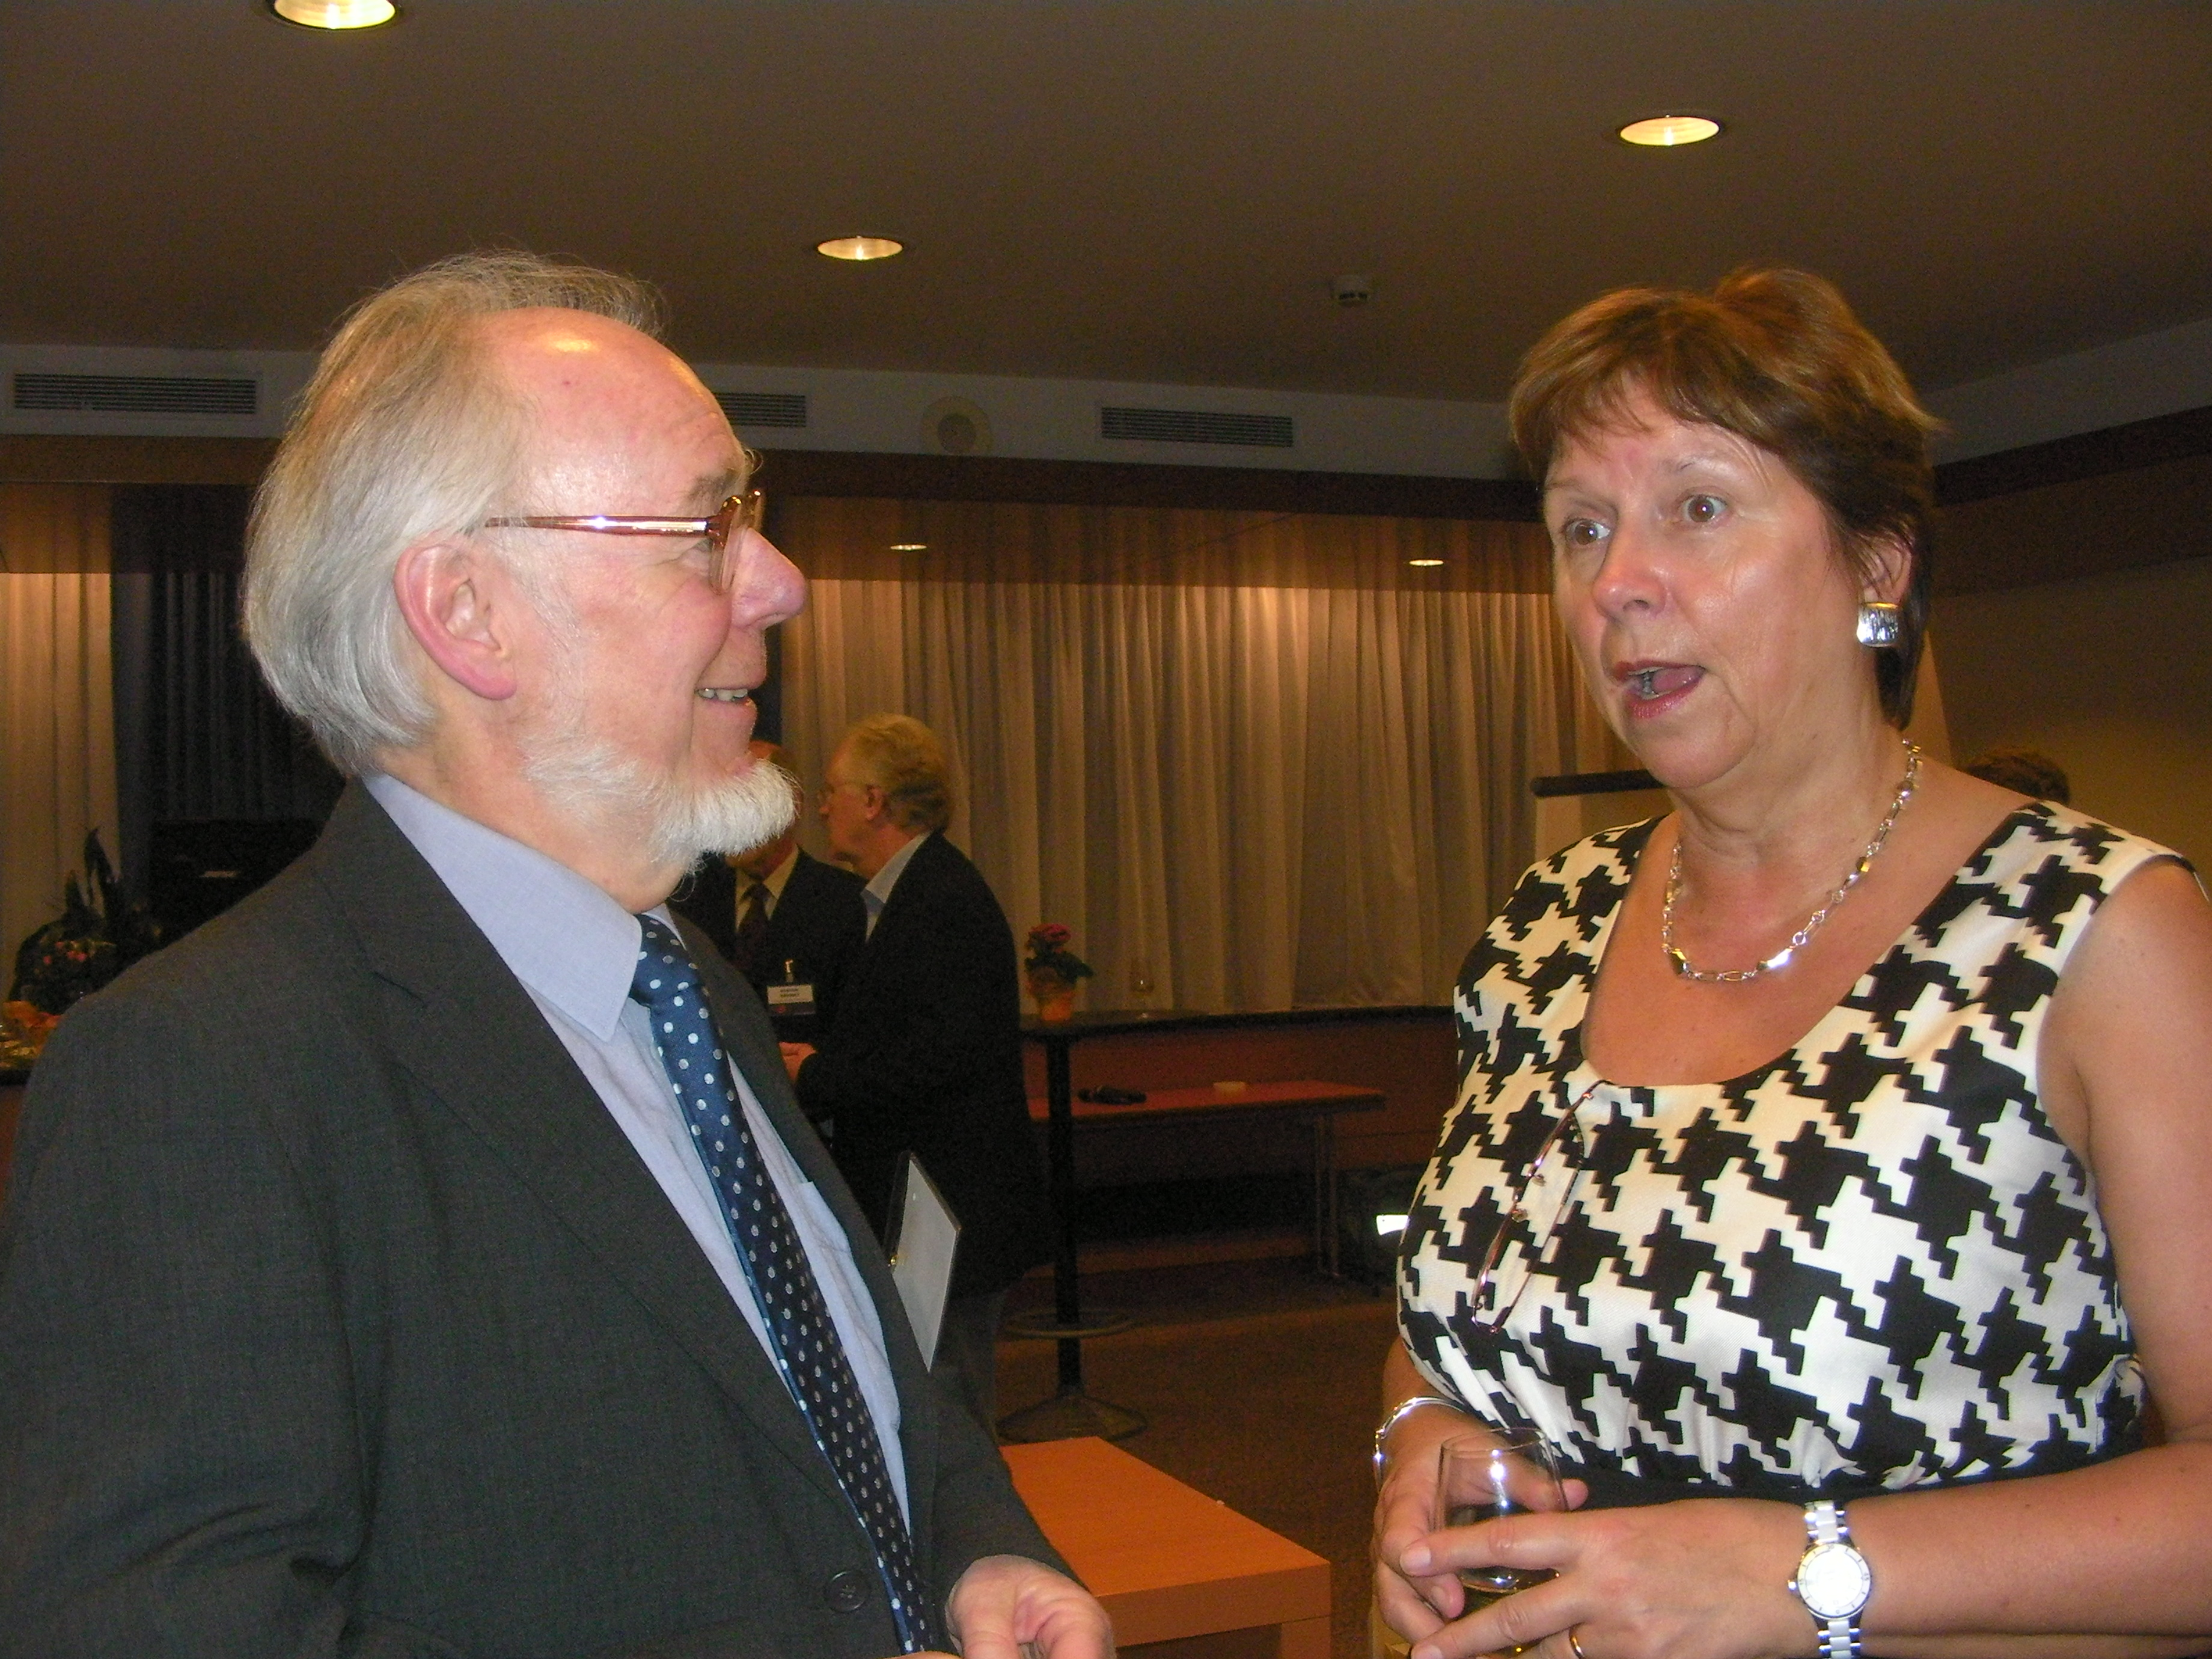 Brian Randell with Wendy Hall at ECSS 2009 in Paris